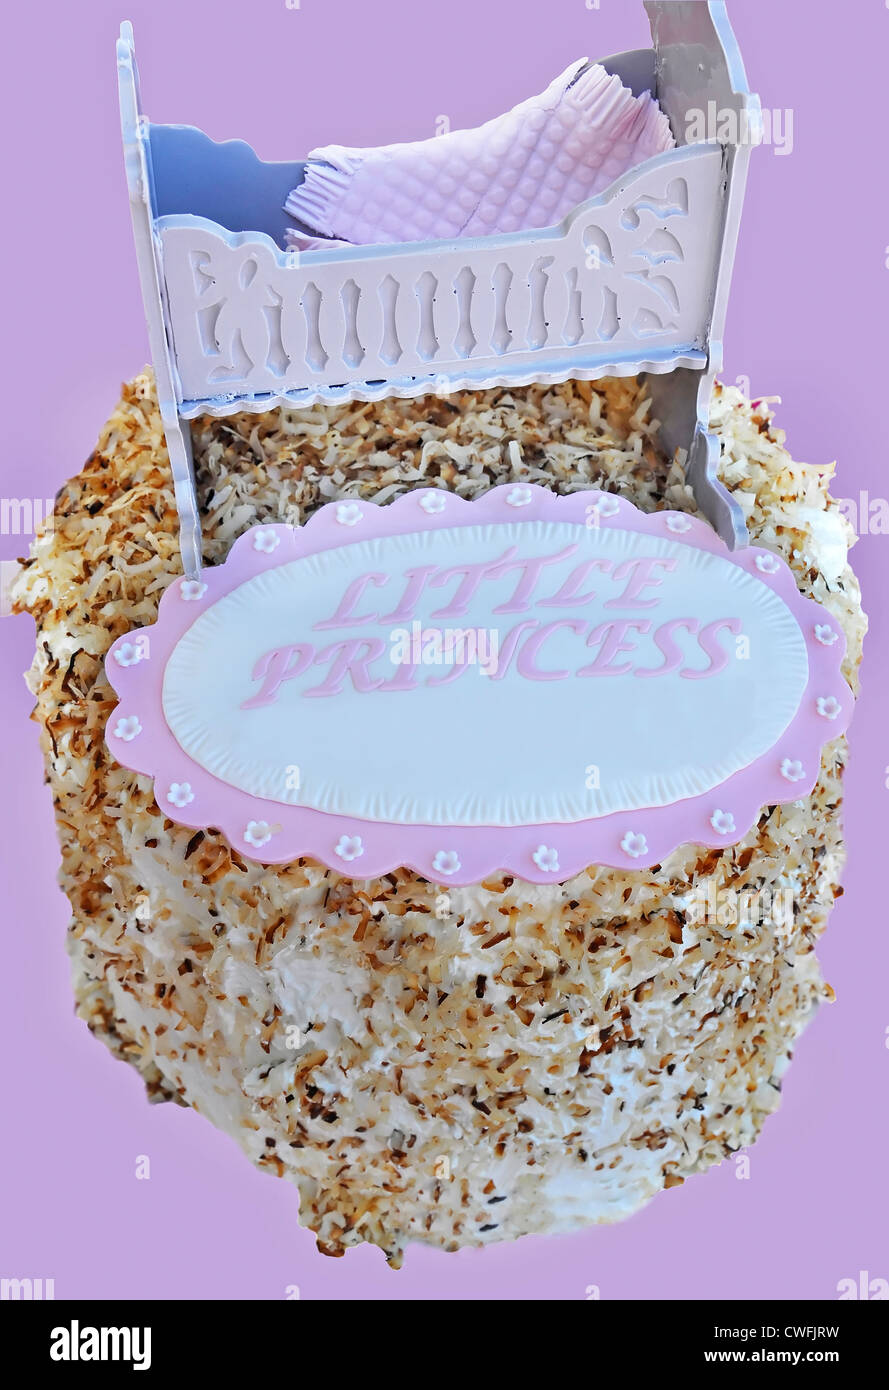 Toasted Coconut Cake Is A Baby Girl Dessert For A Baby Shower Cake